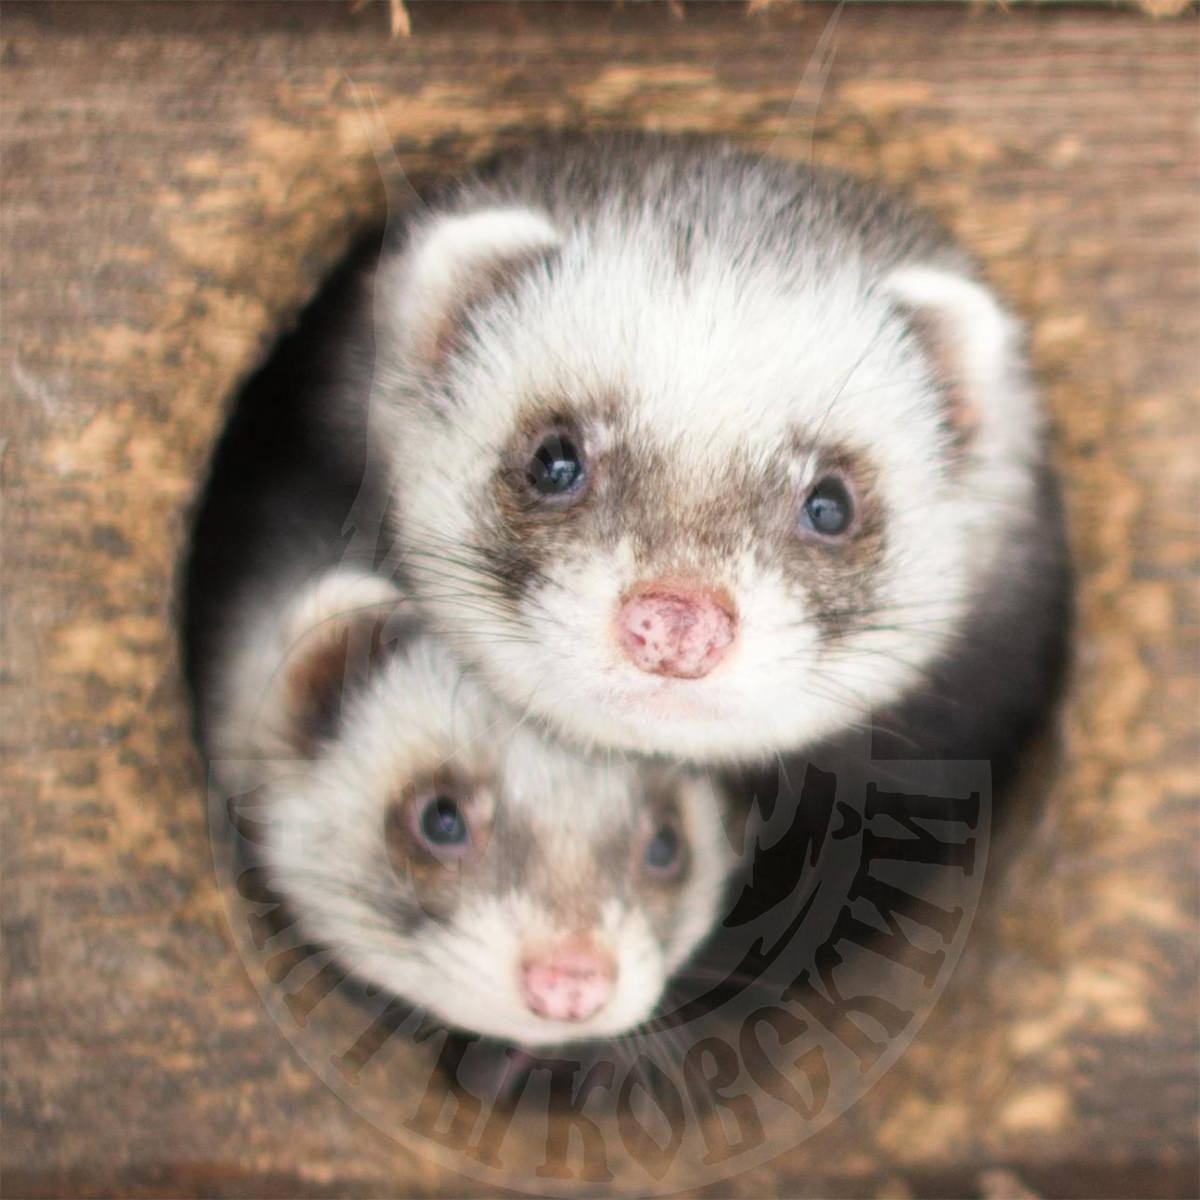 Selling young ferrets